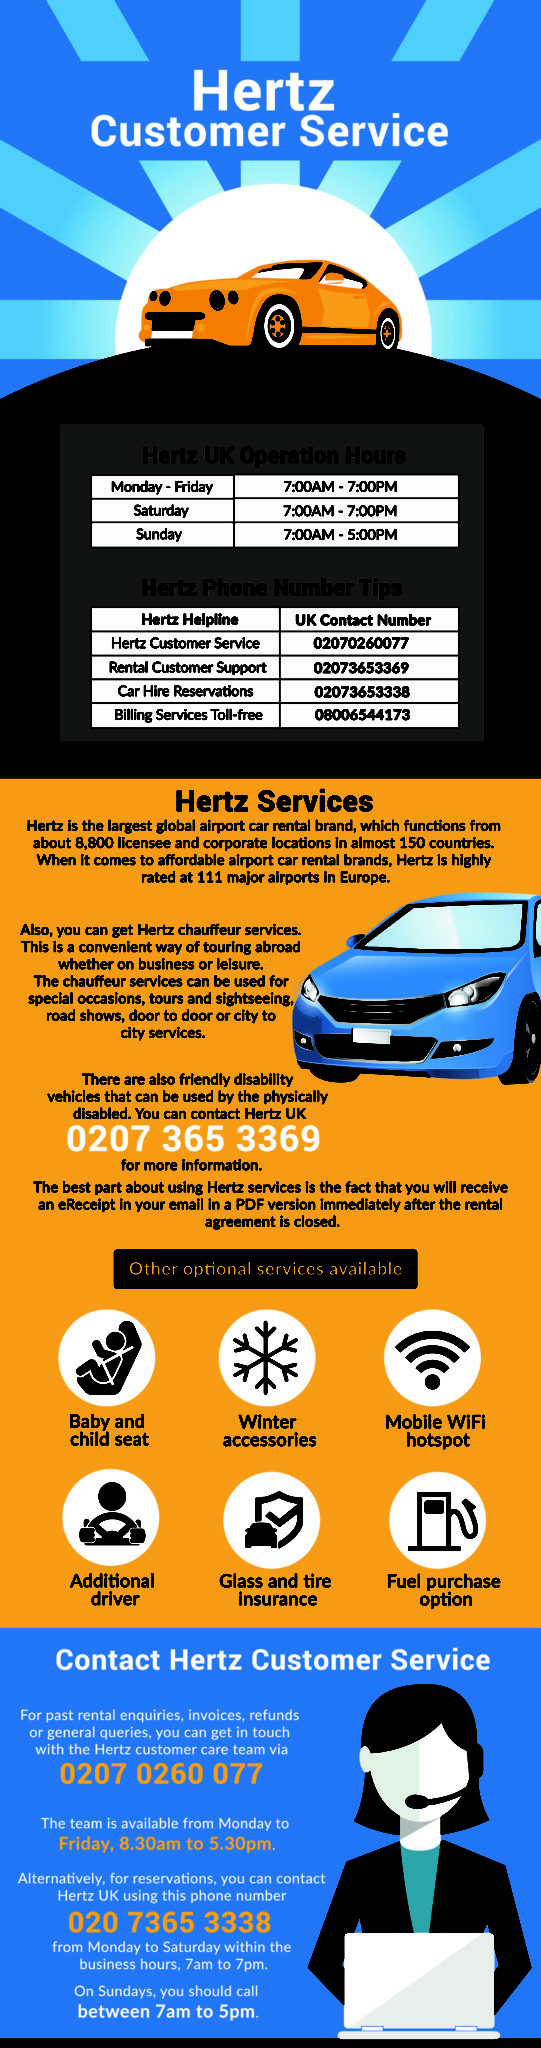 Hertz Customer Service Contact Number